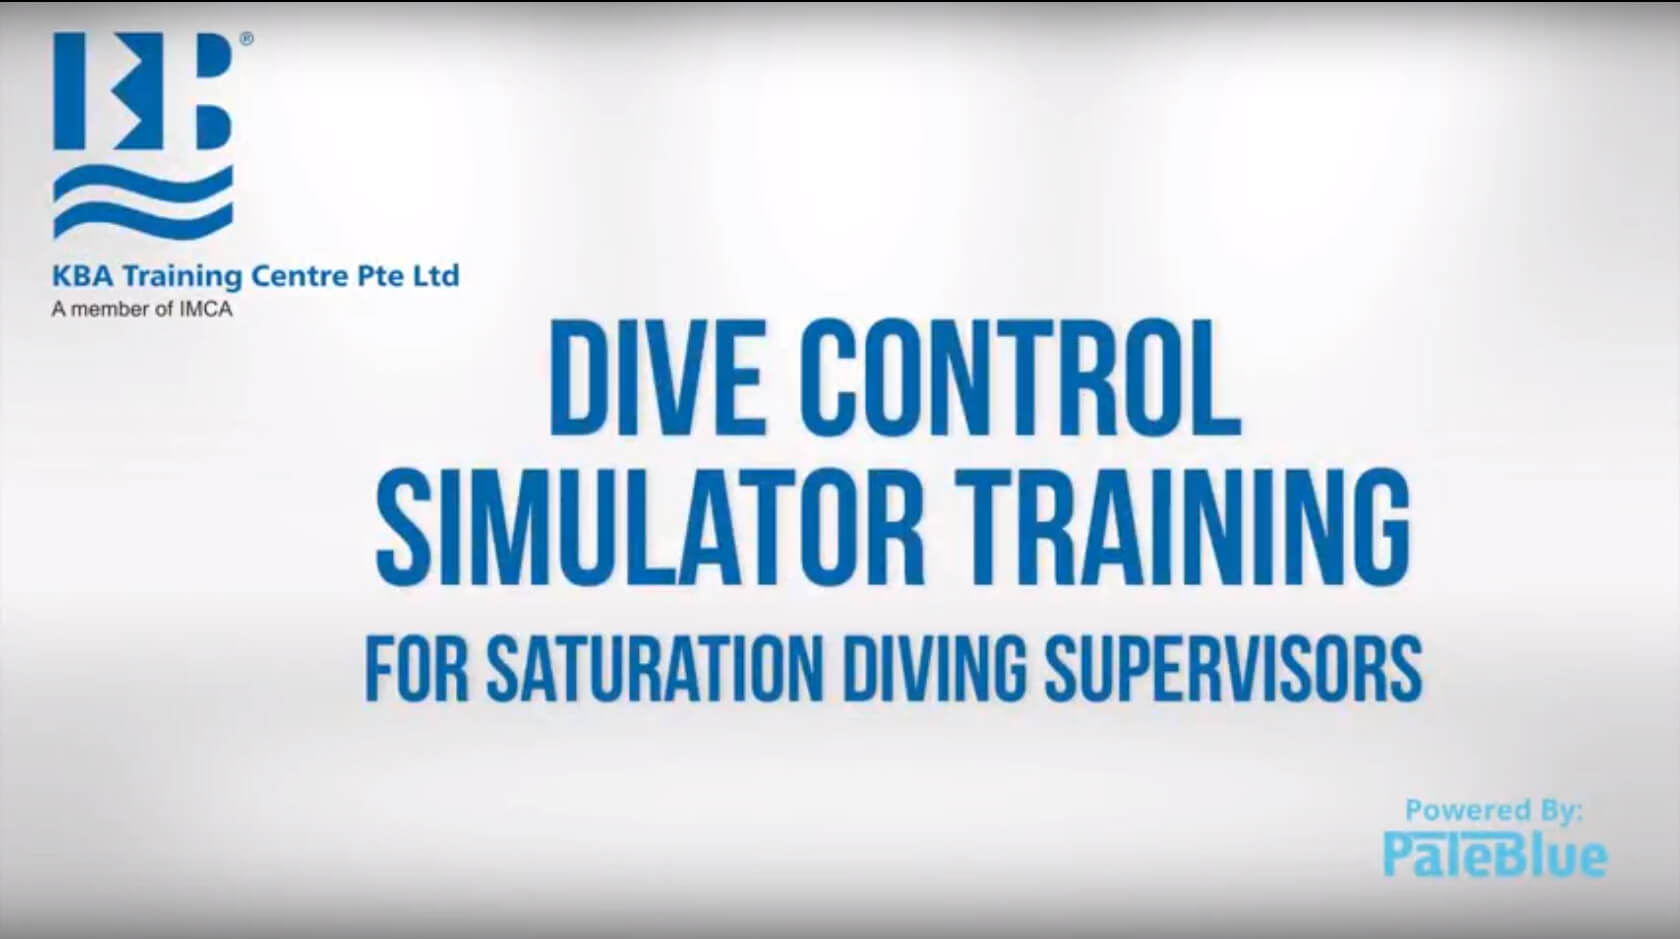 The Only IMCA-Recognized Digital Simulator for Certification in Diving